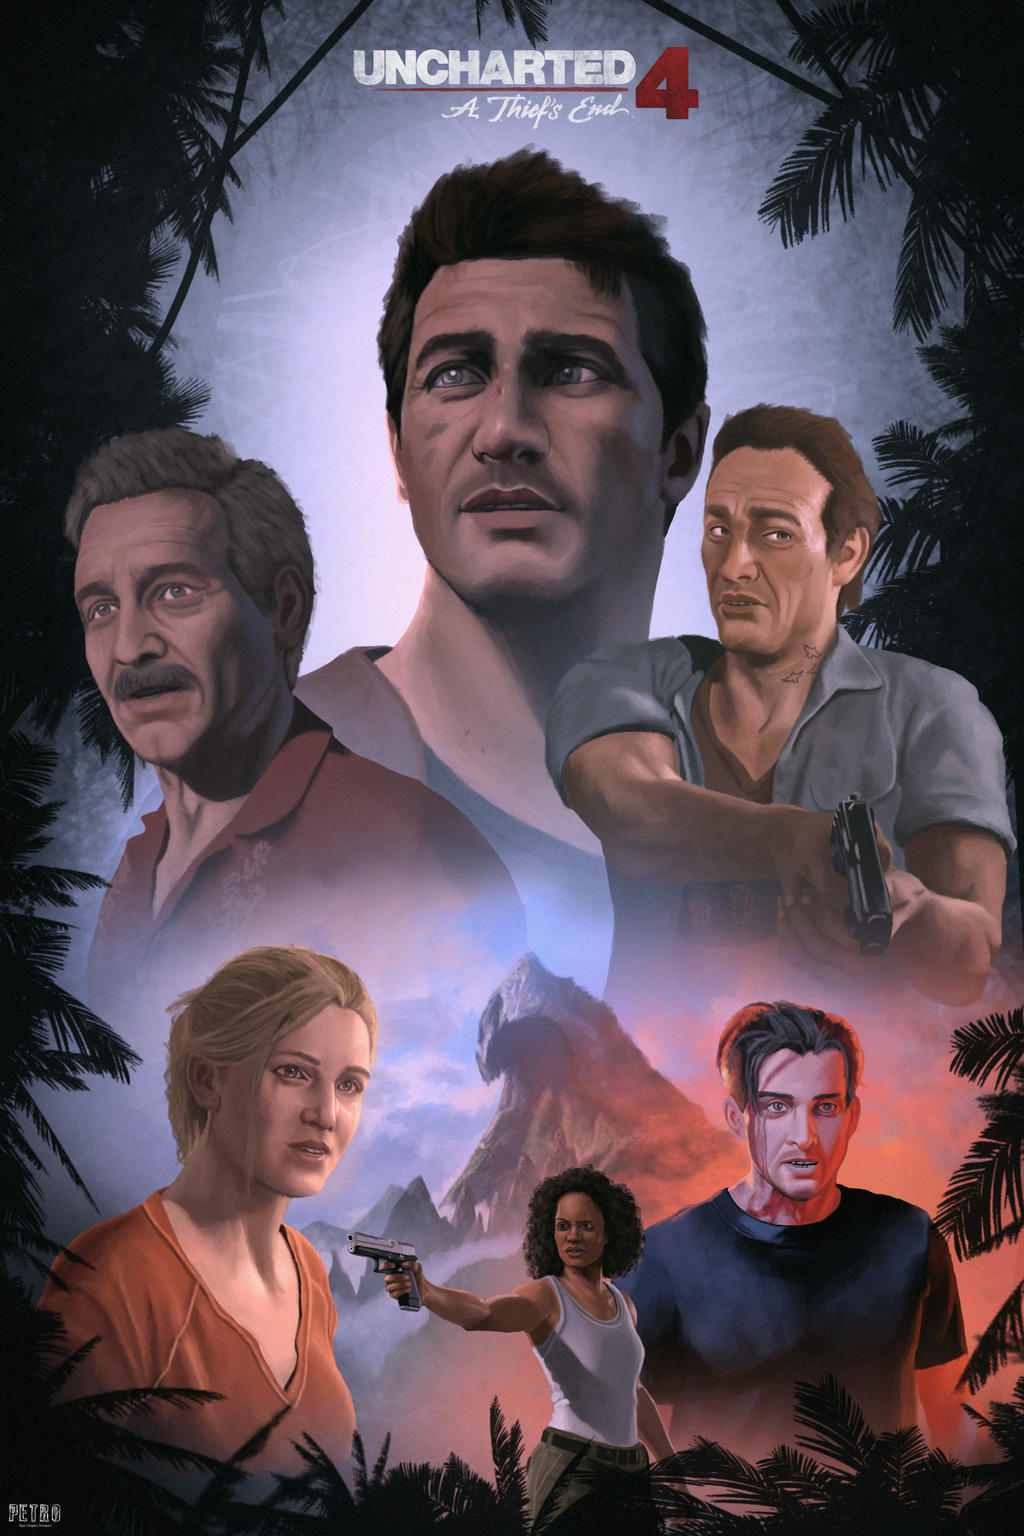 Uncharted 4 Poster Fan Art Digital Painting By Petro96 On